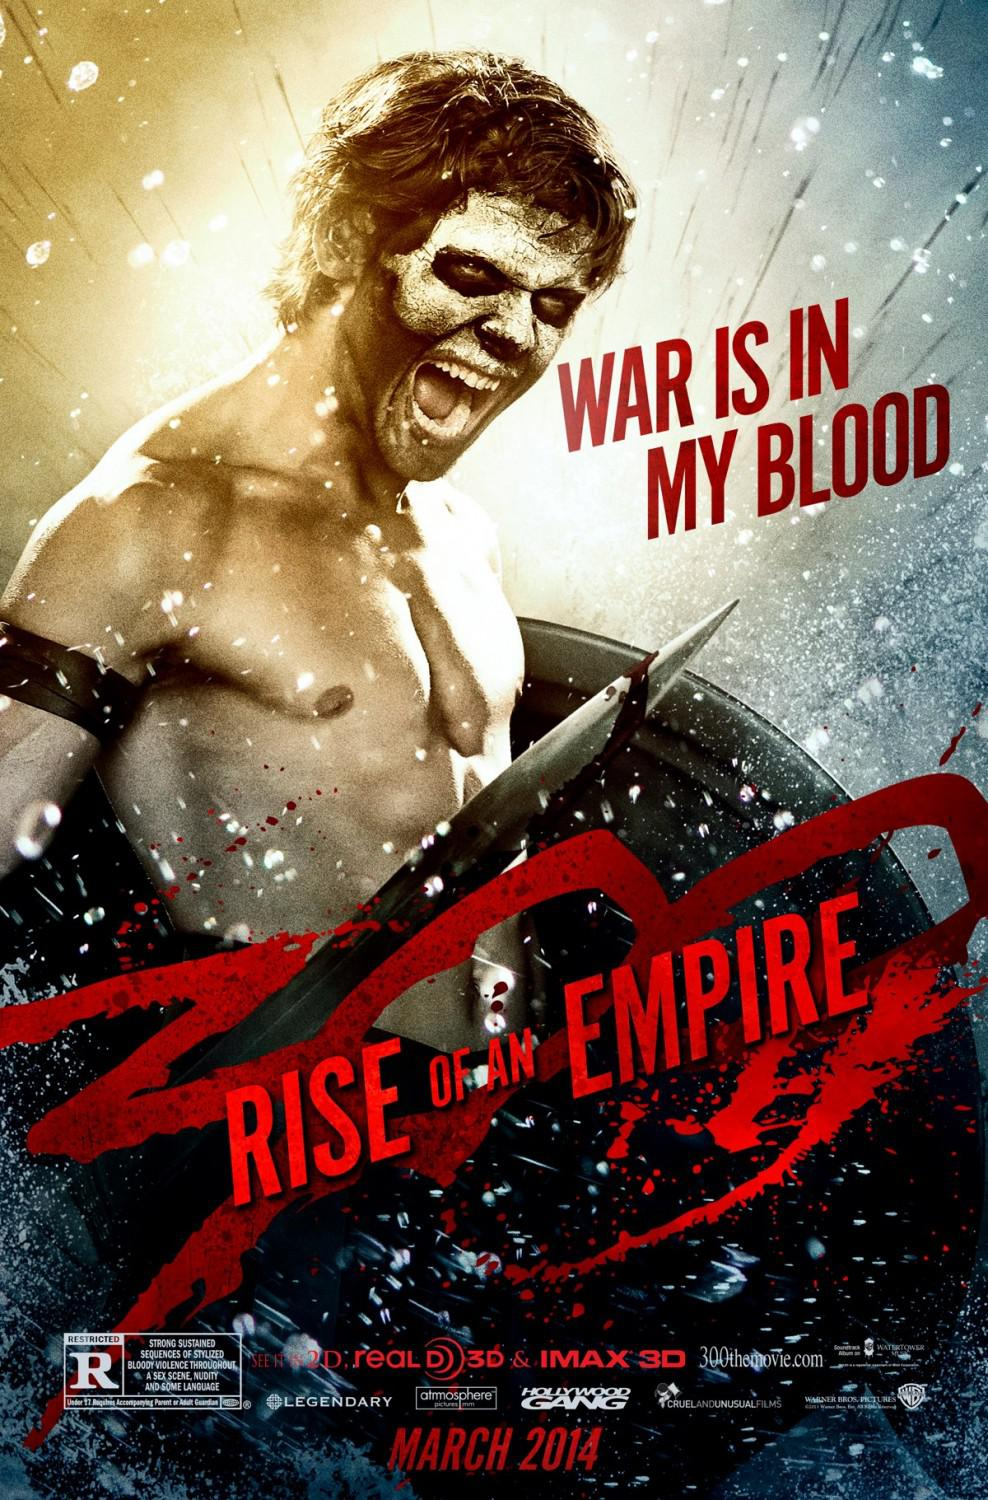 300 Alba di un Impero - Three hundred rise of an Empire - war in my blood